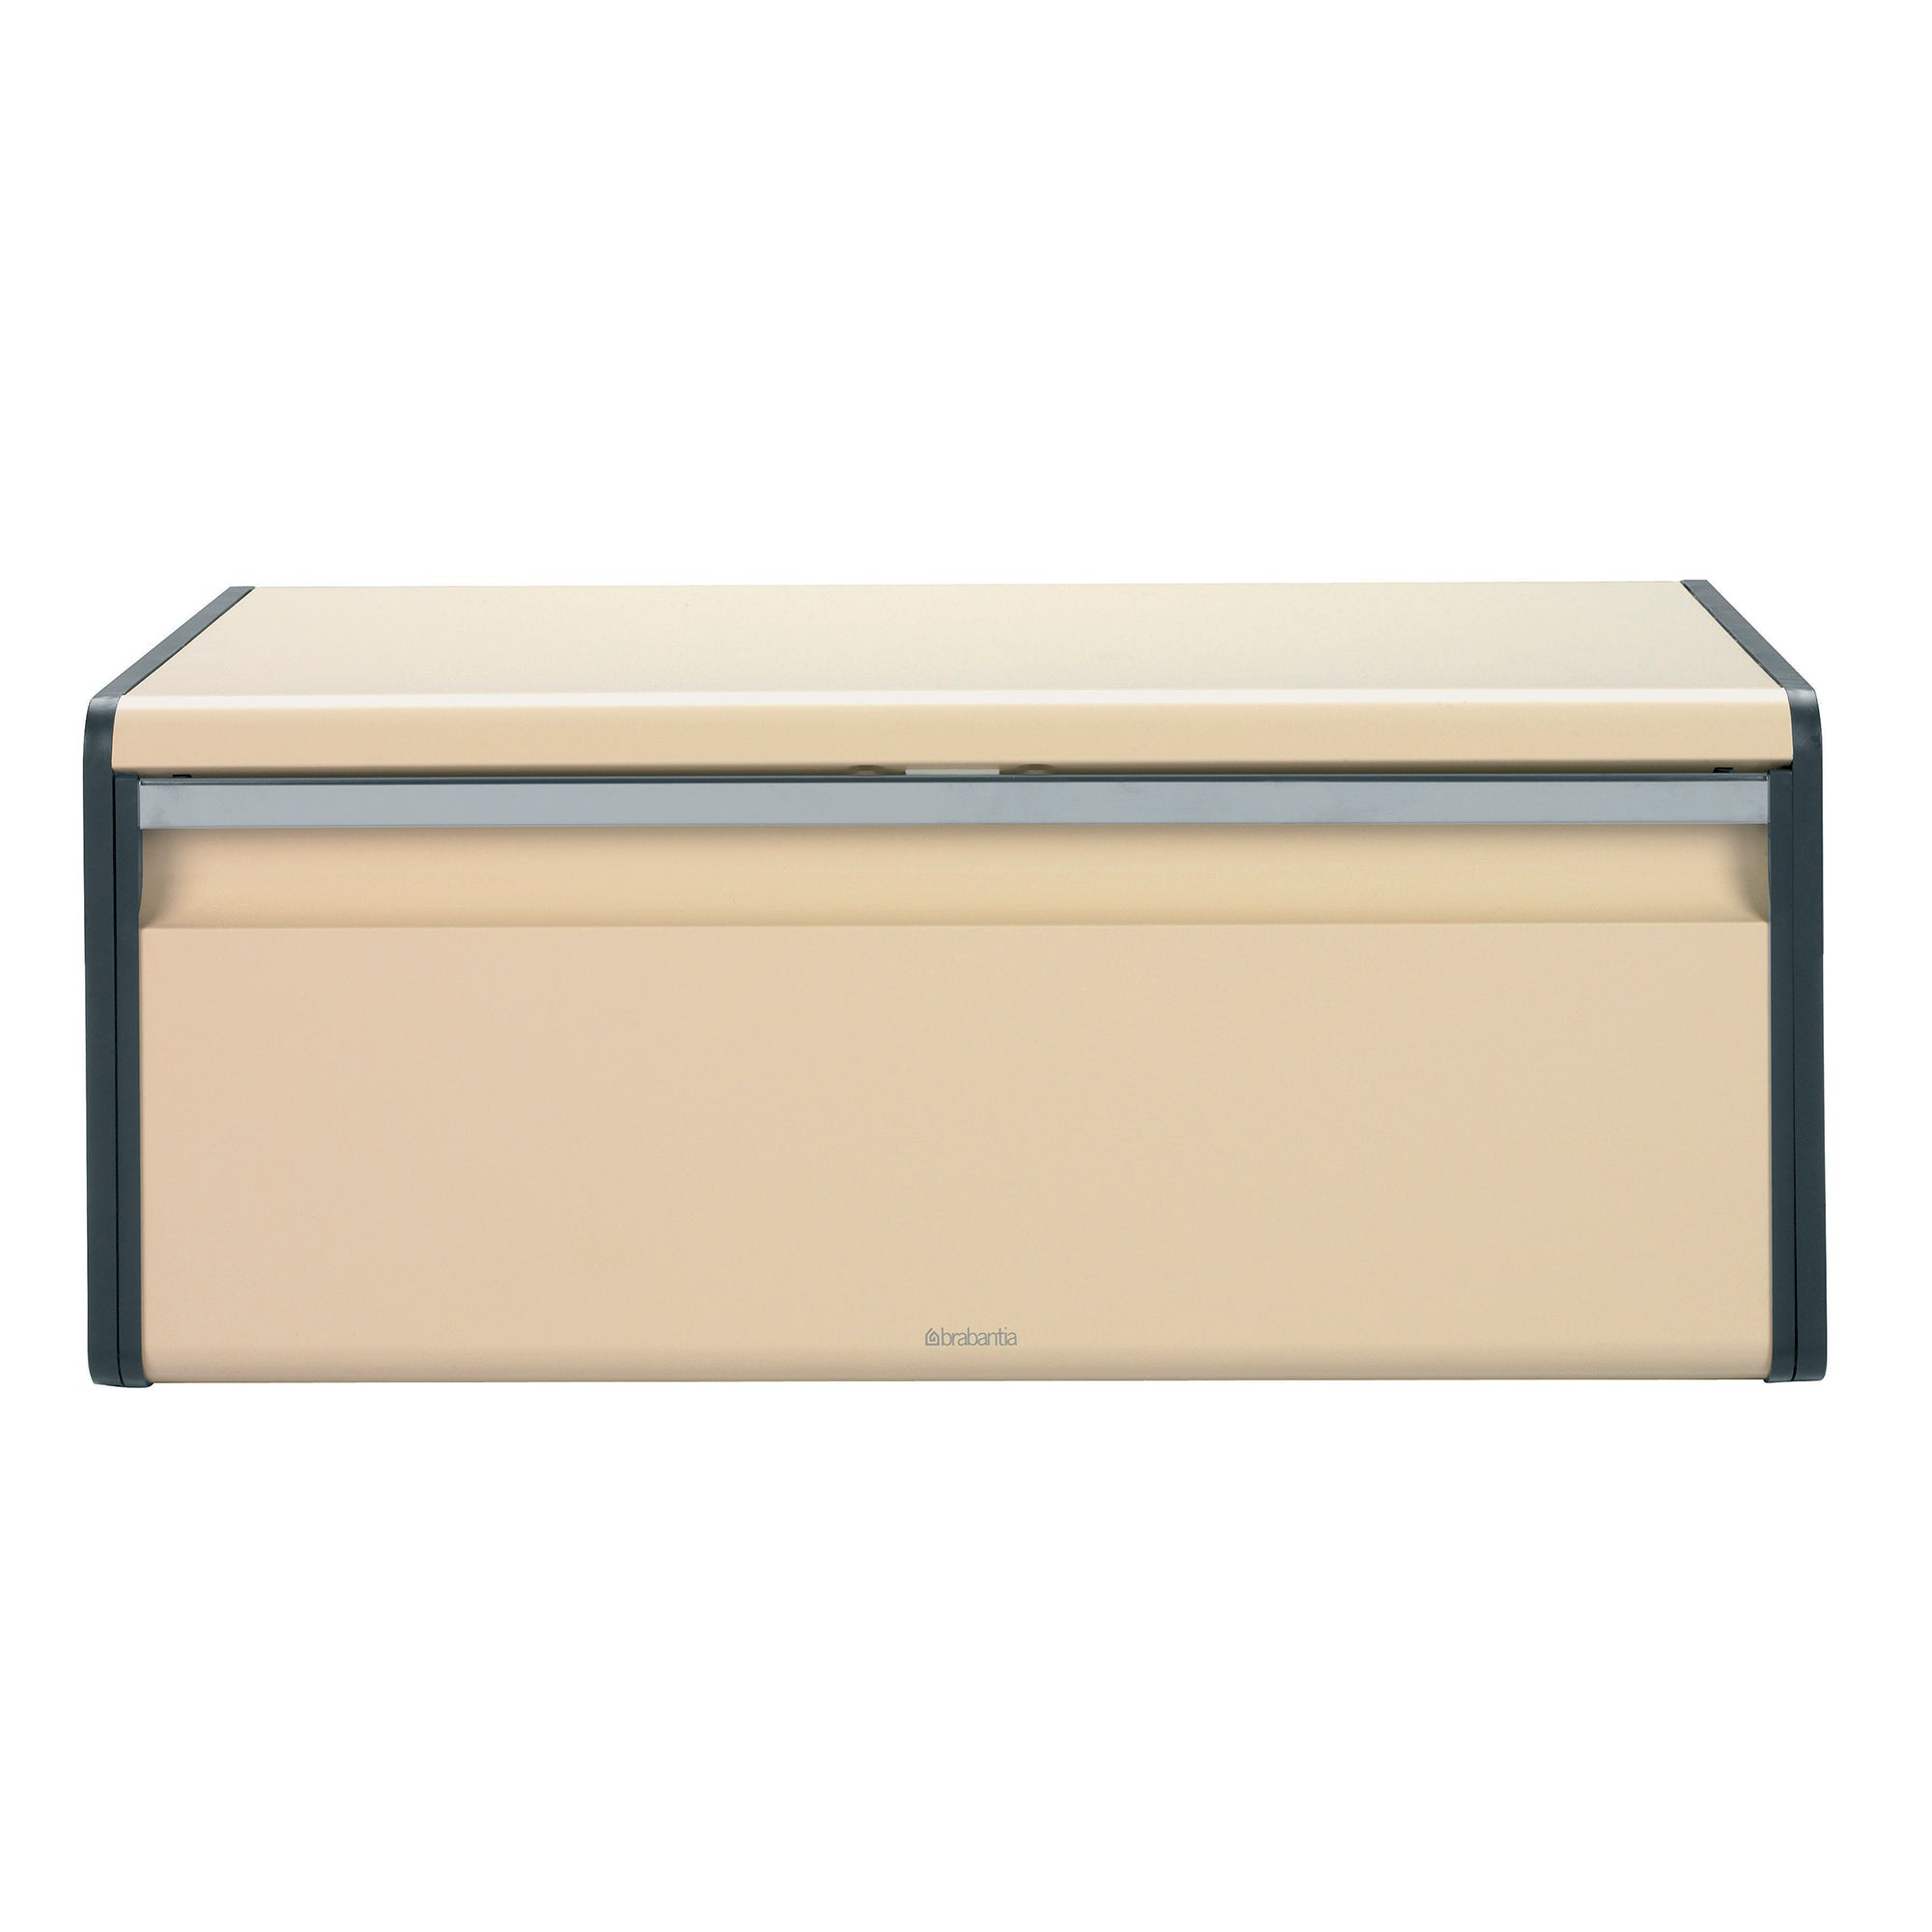 Brabantia Almond Fall Front Bread Bin